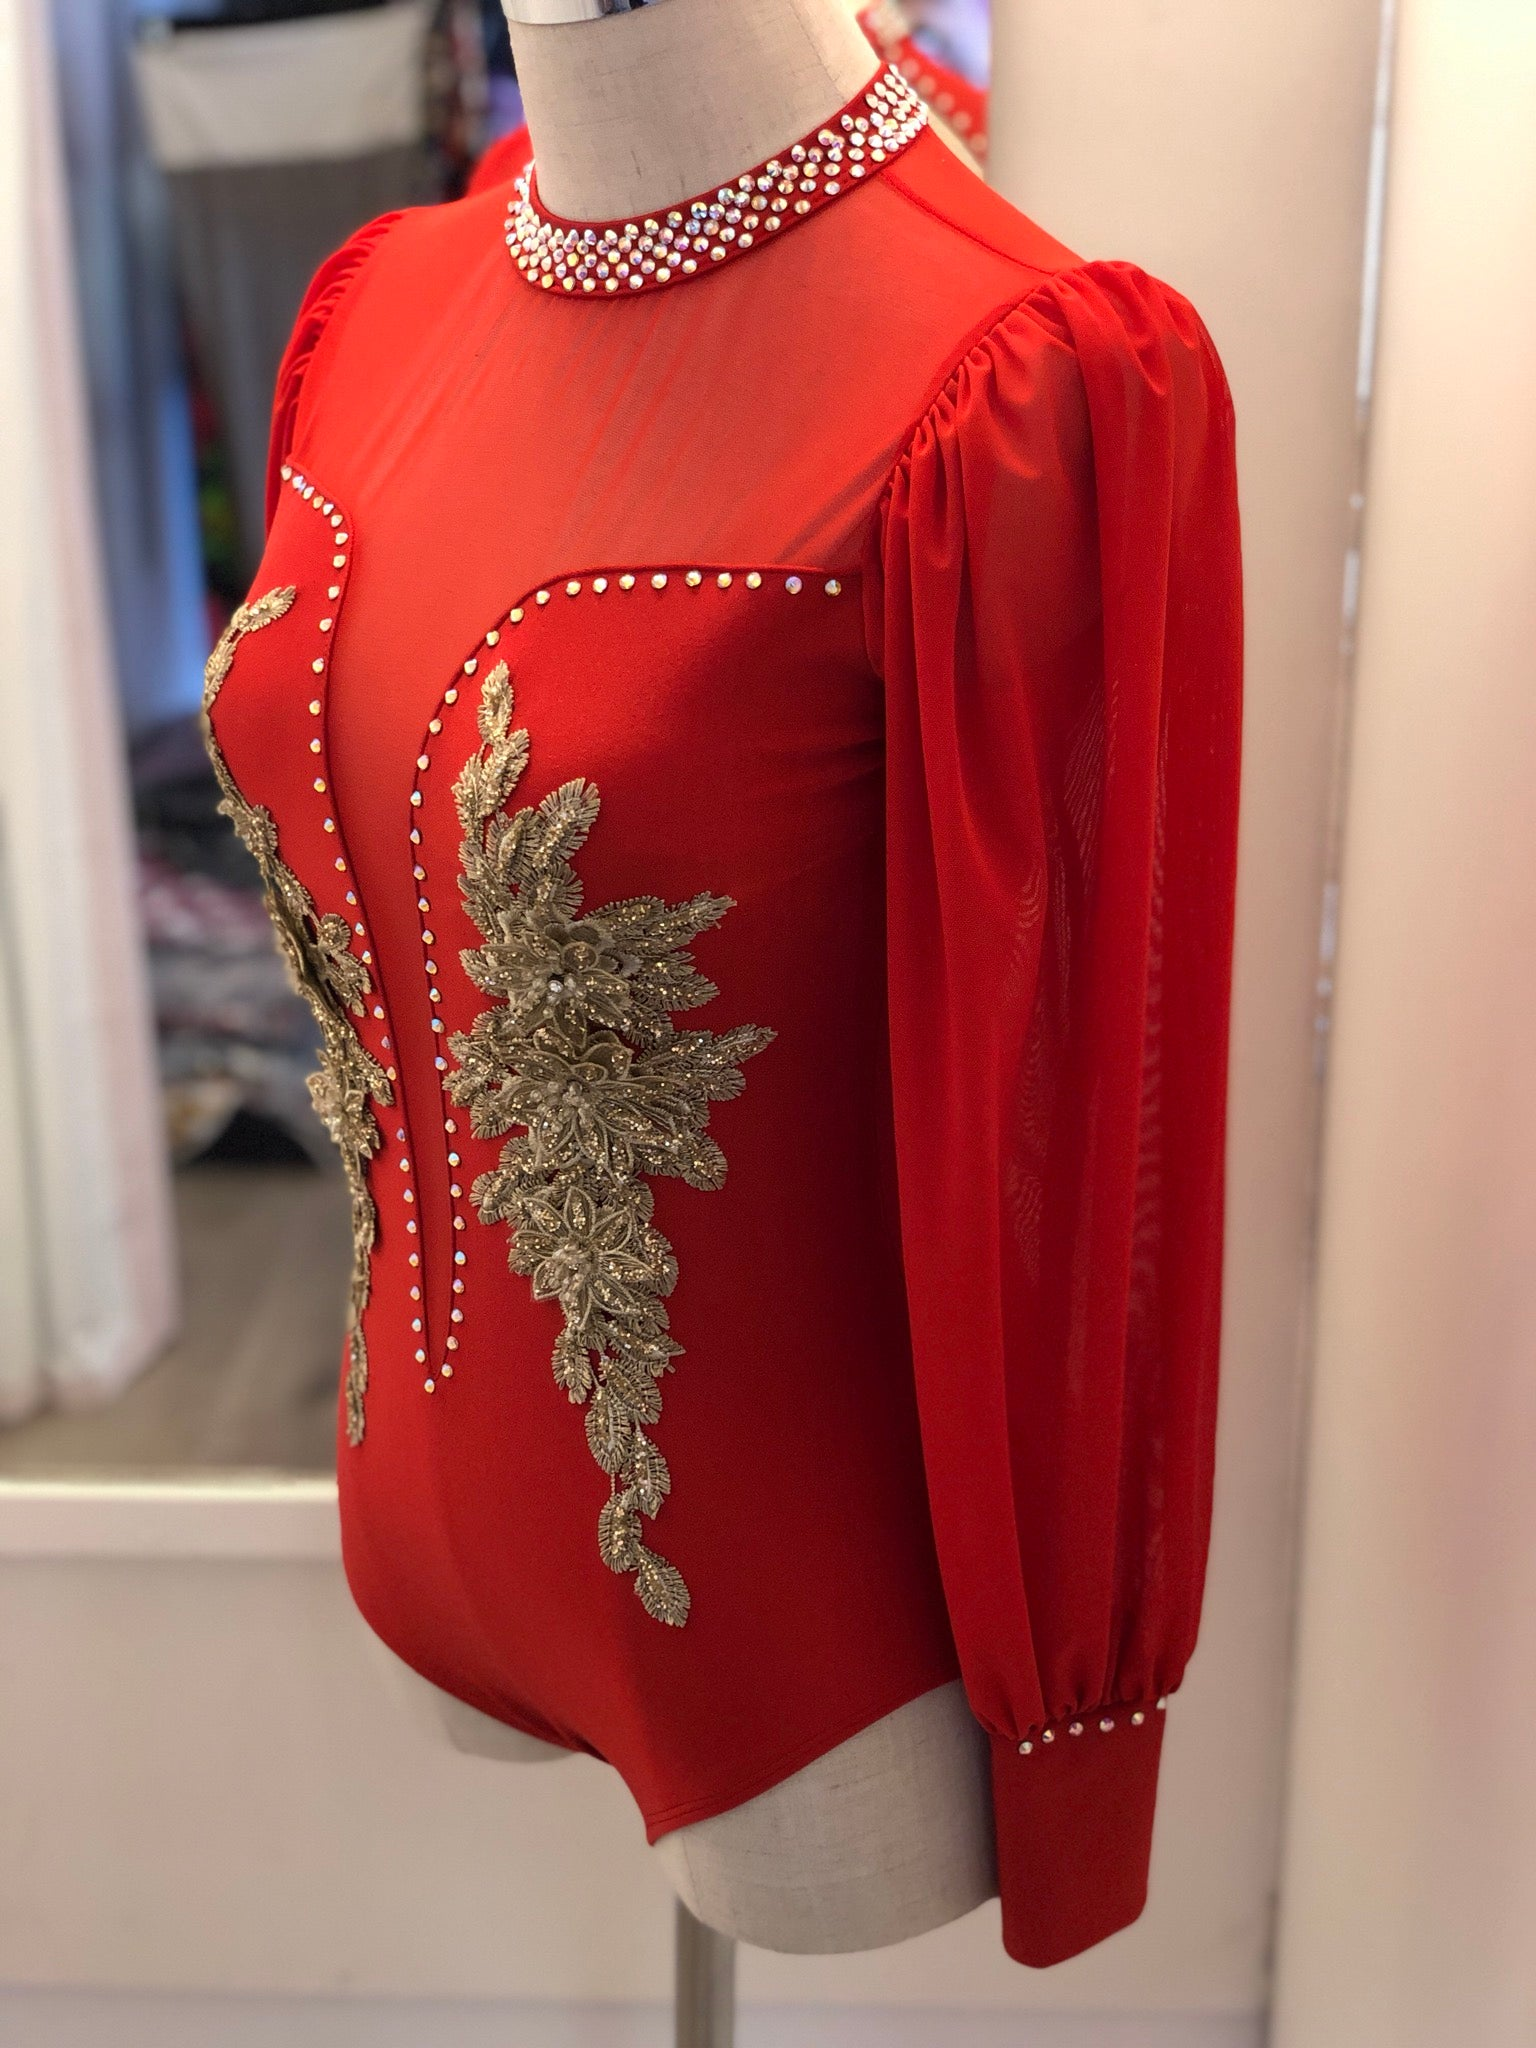 Red lyrical Contemporary Size XS Adult Costume